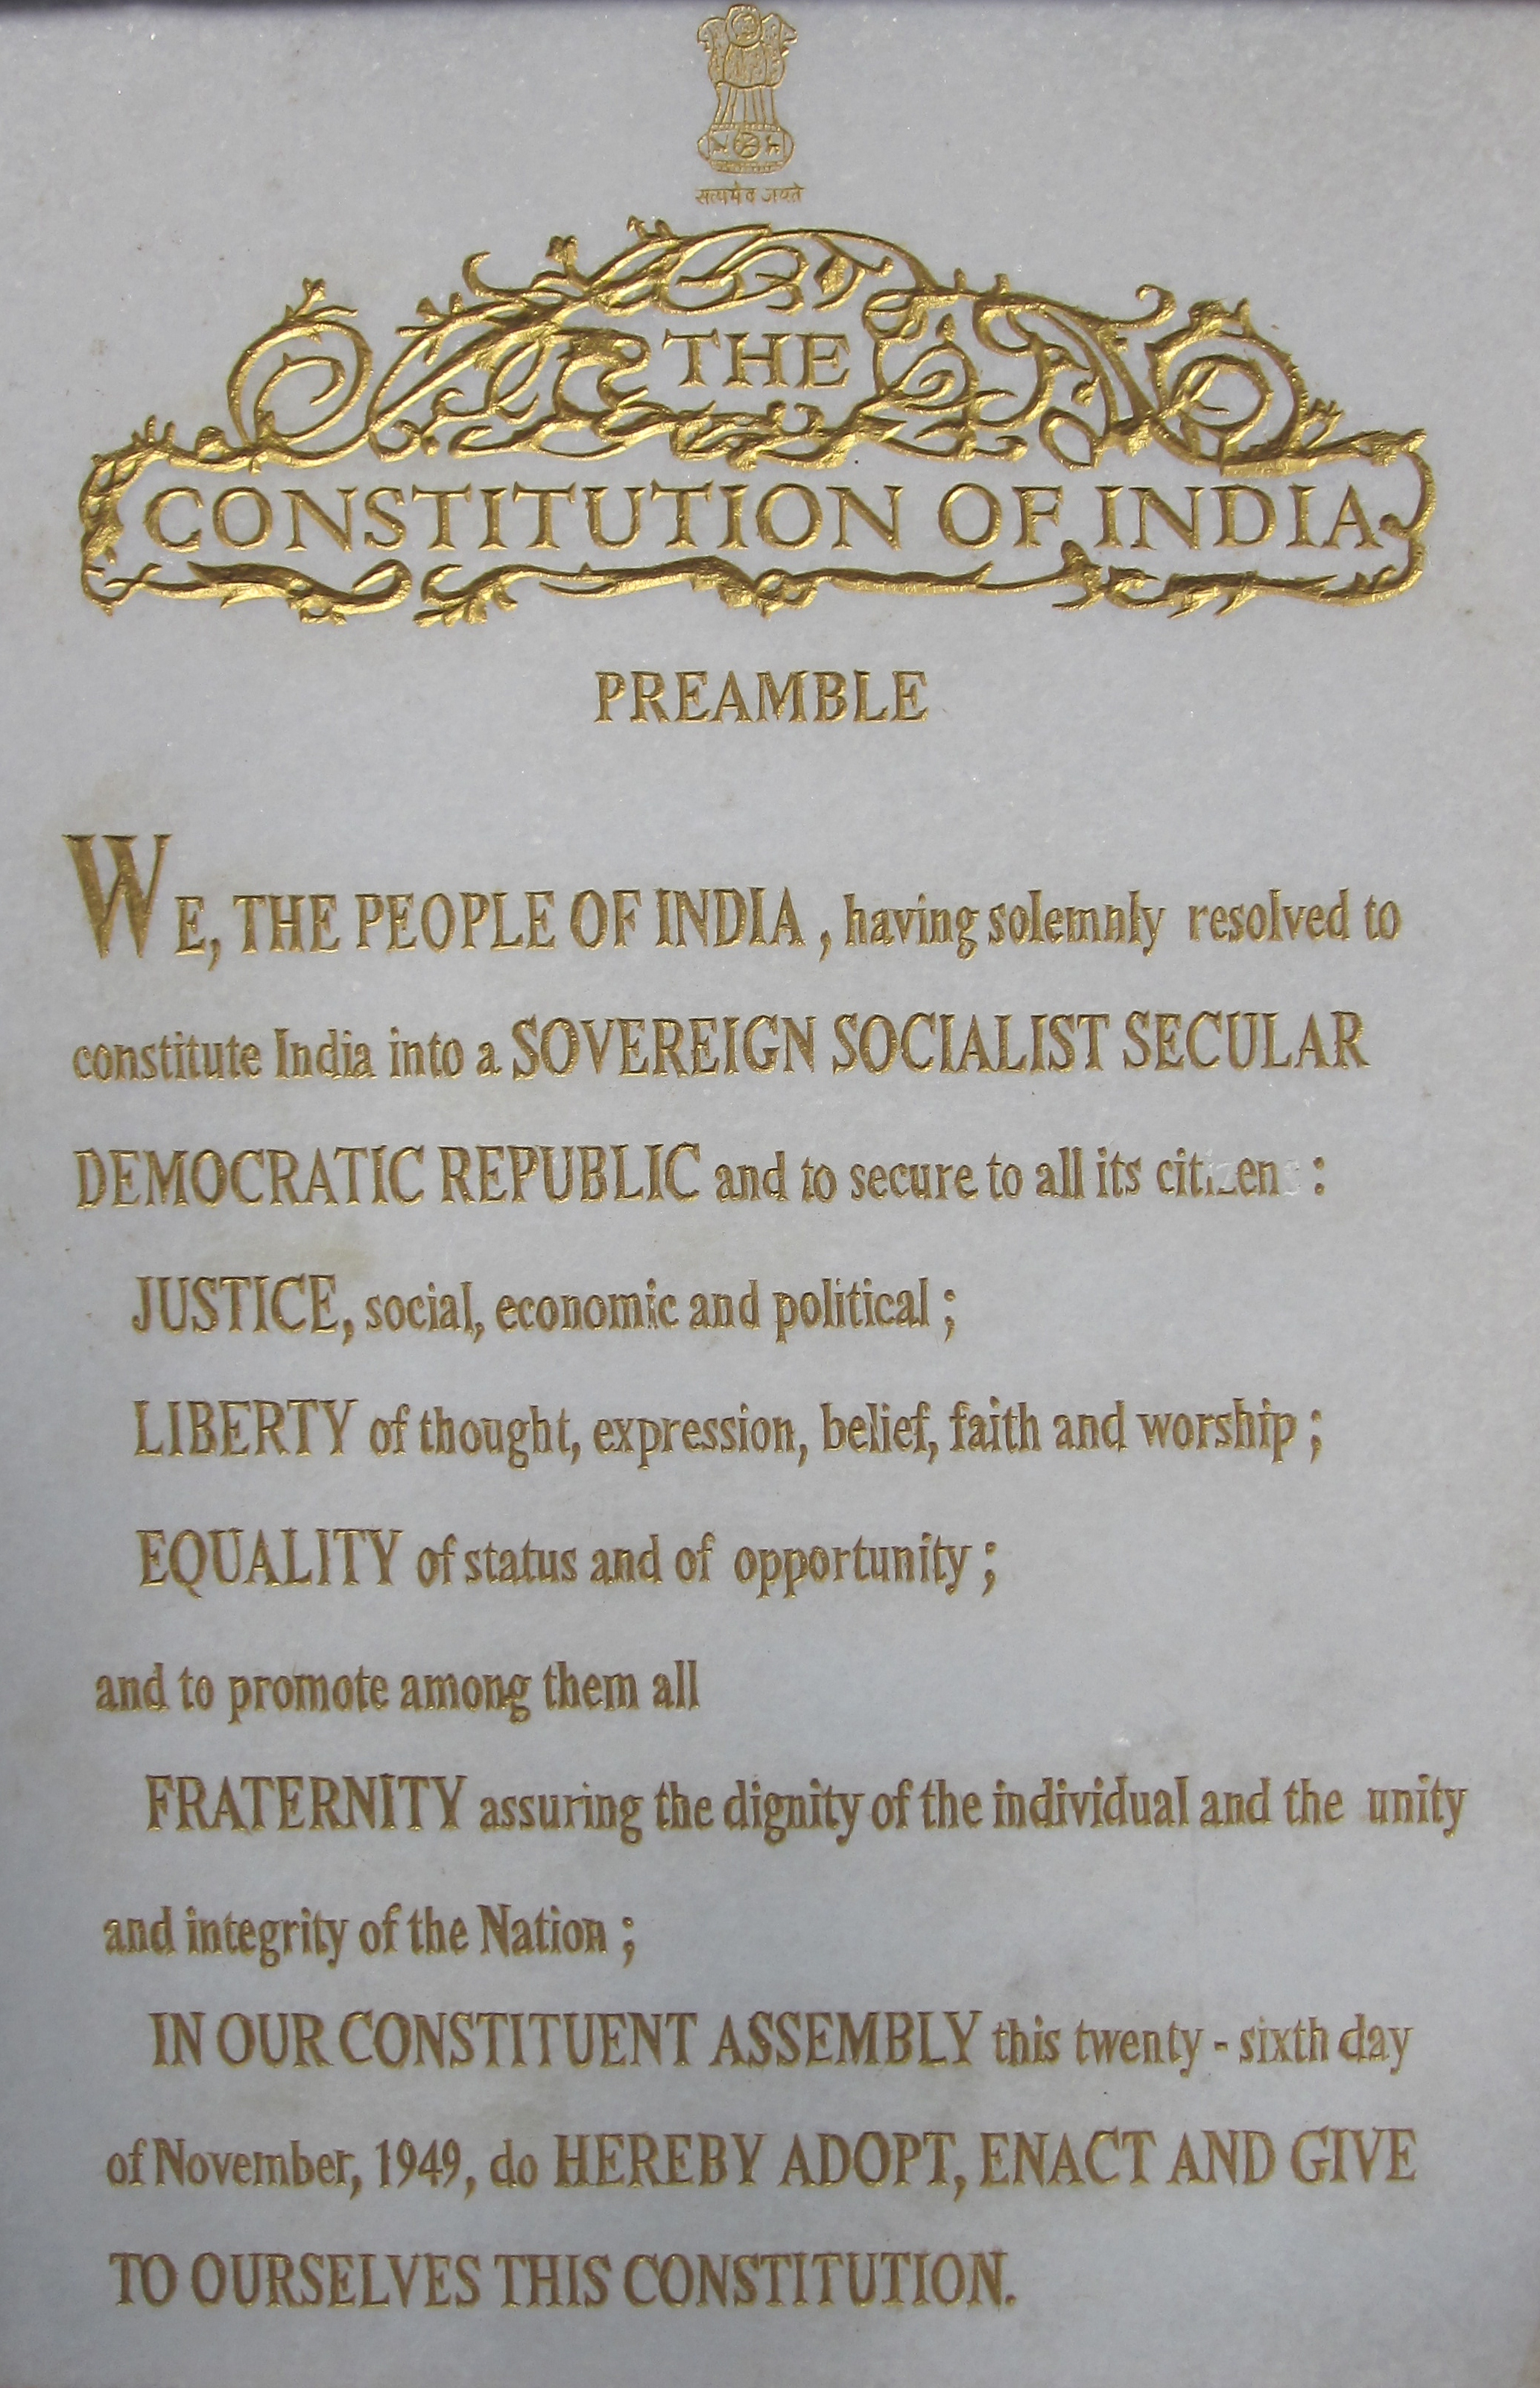 https://upload.wikimedia.org/wikipedia/commons/1/16/Constitution_of_india.jpg